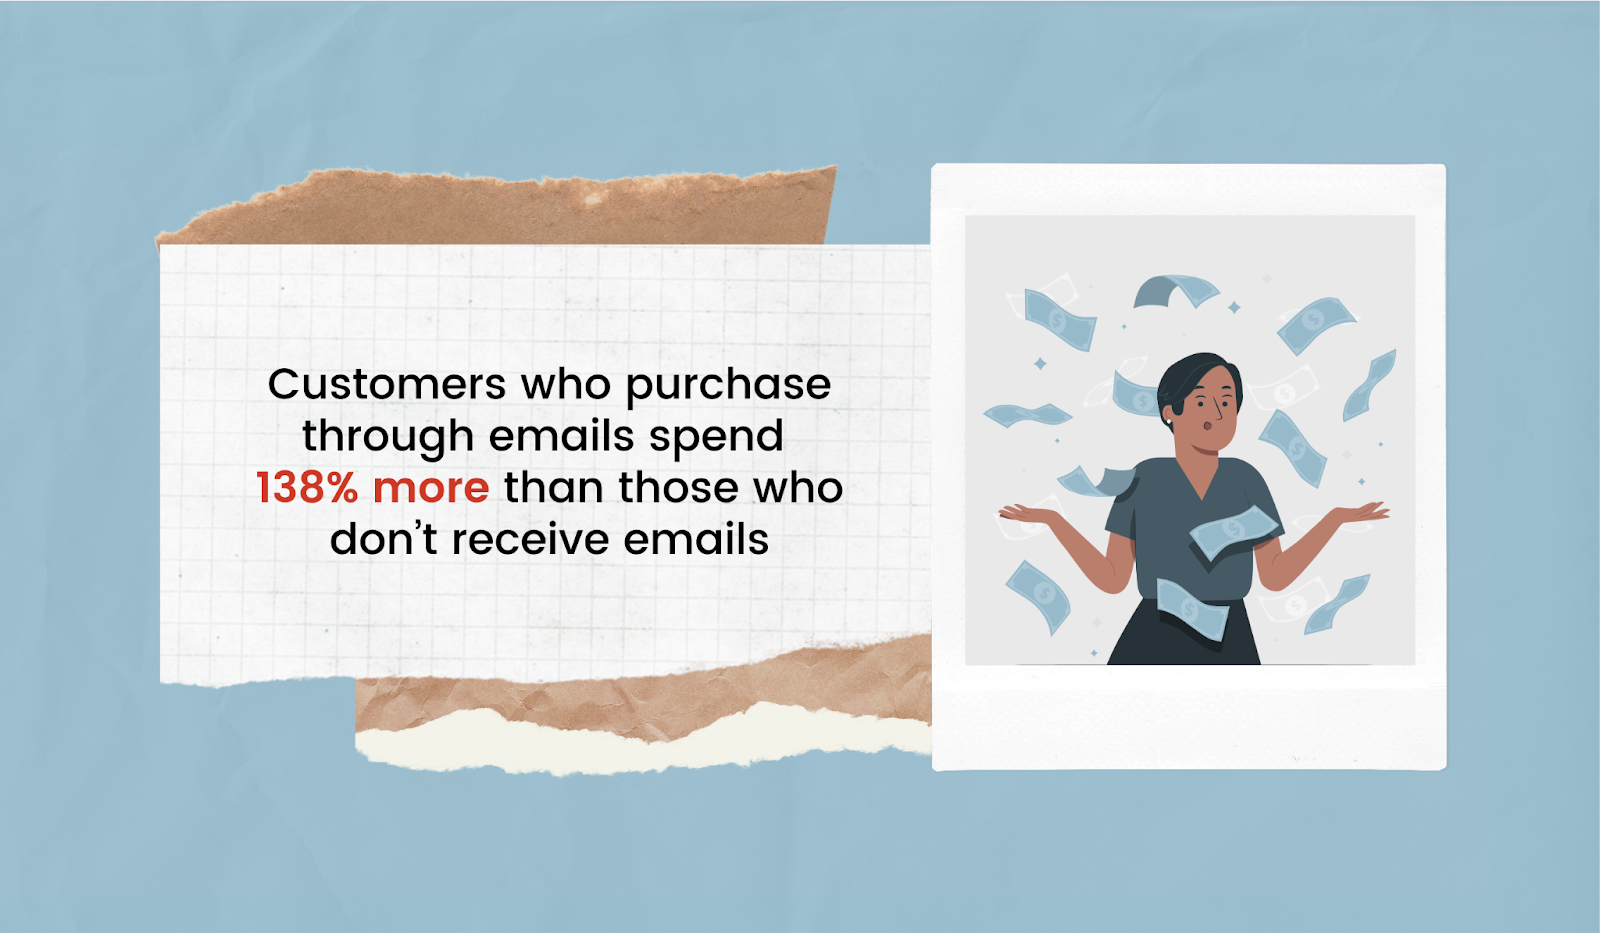 Those who receive emails spend 138% more than those who don't